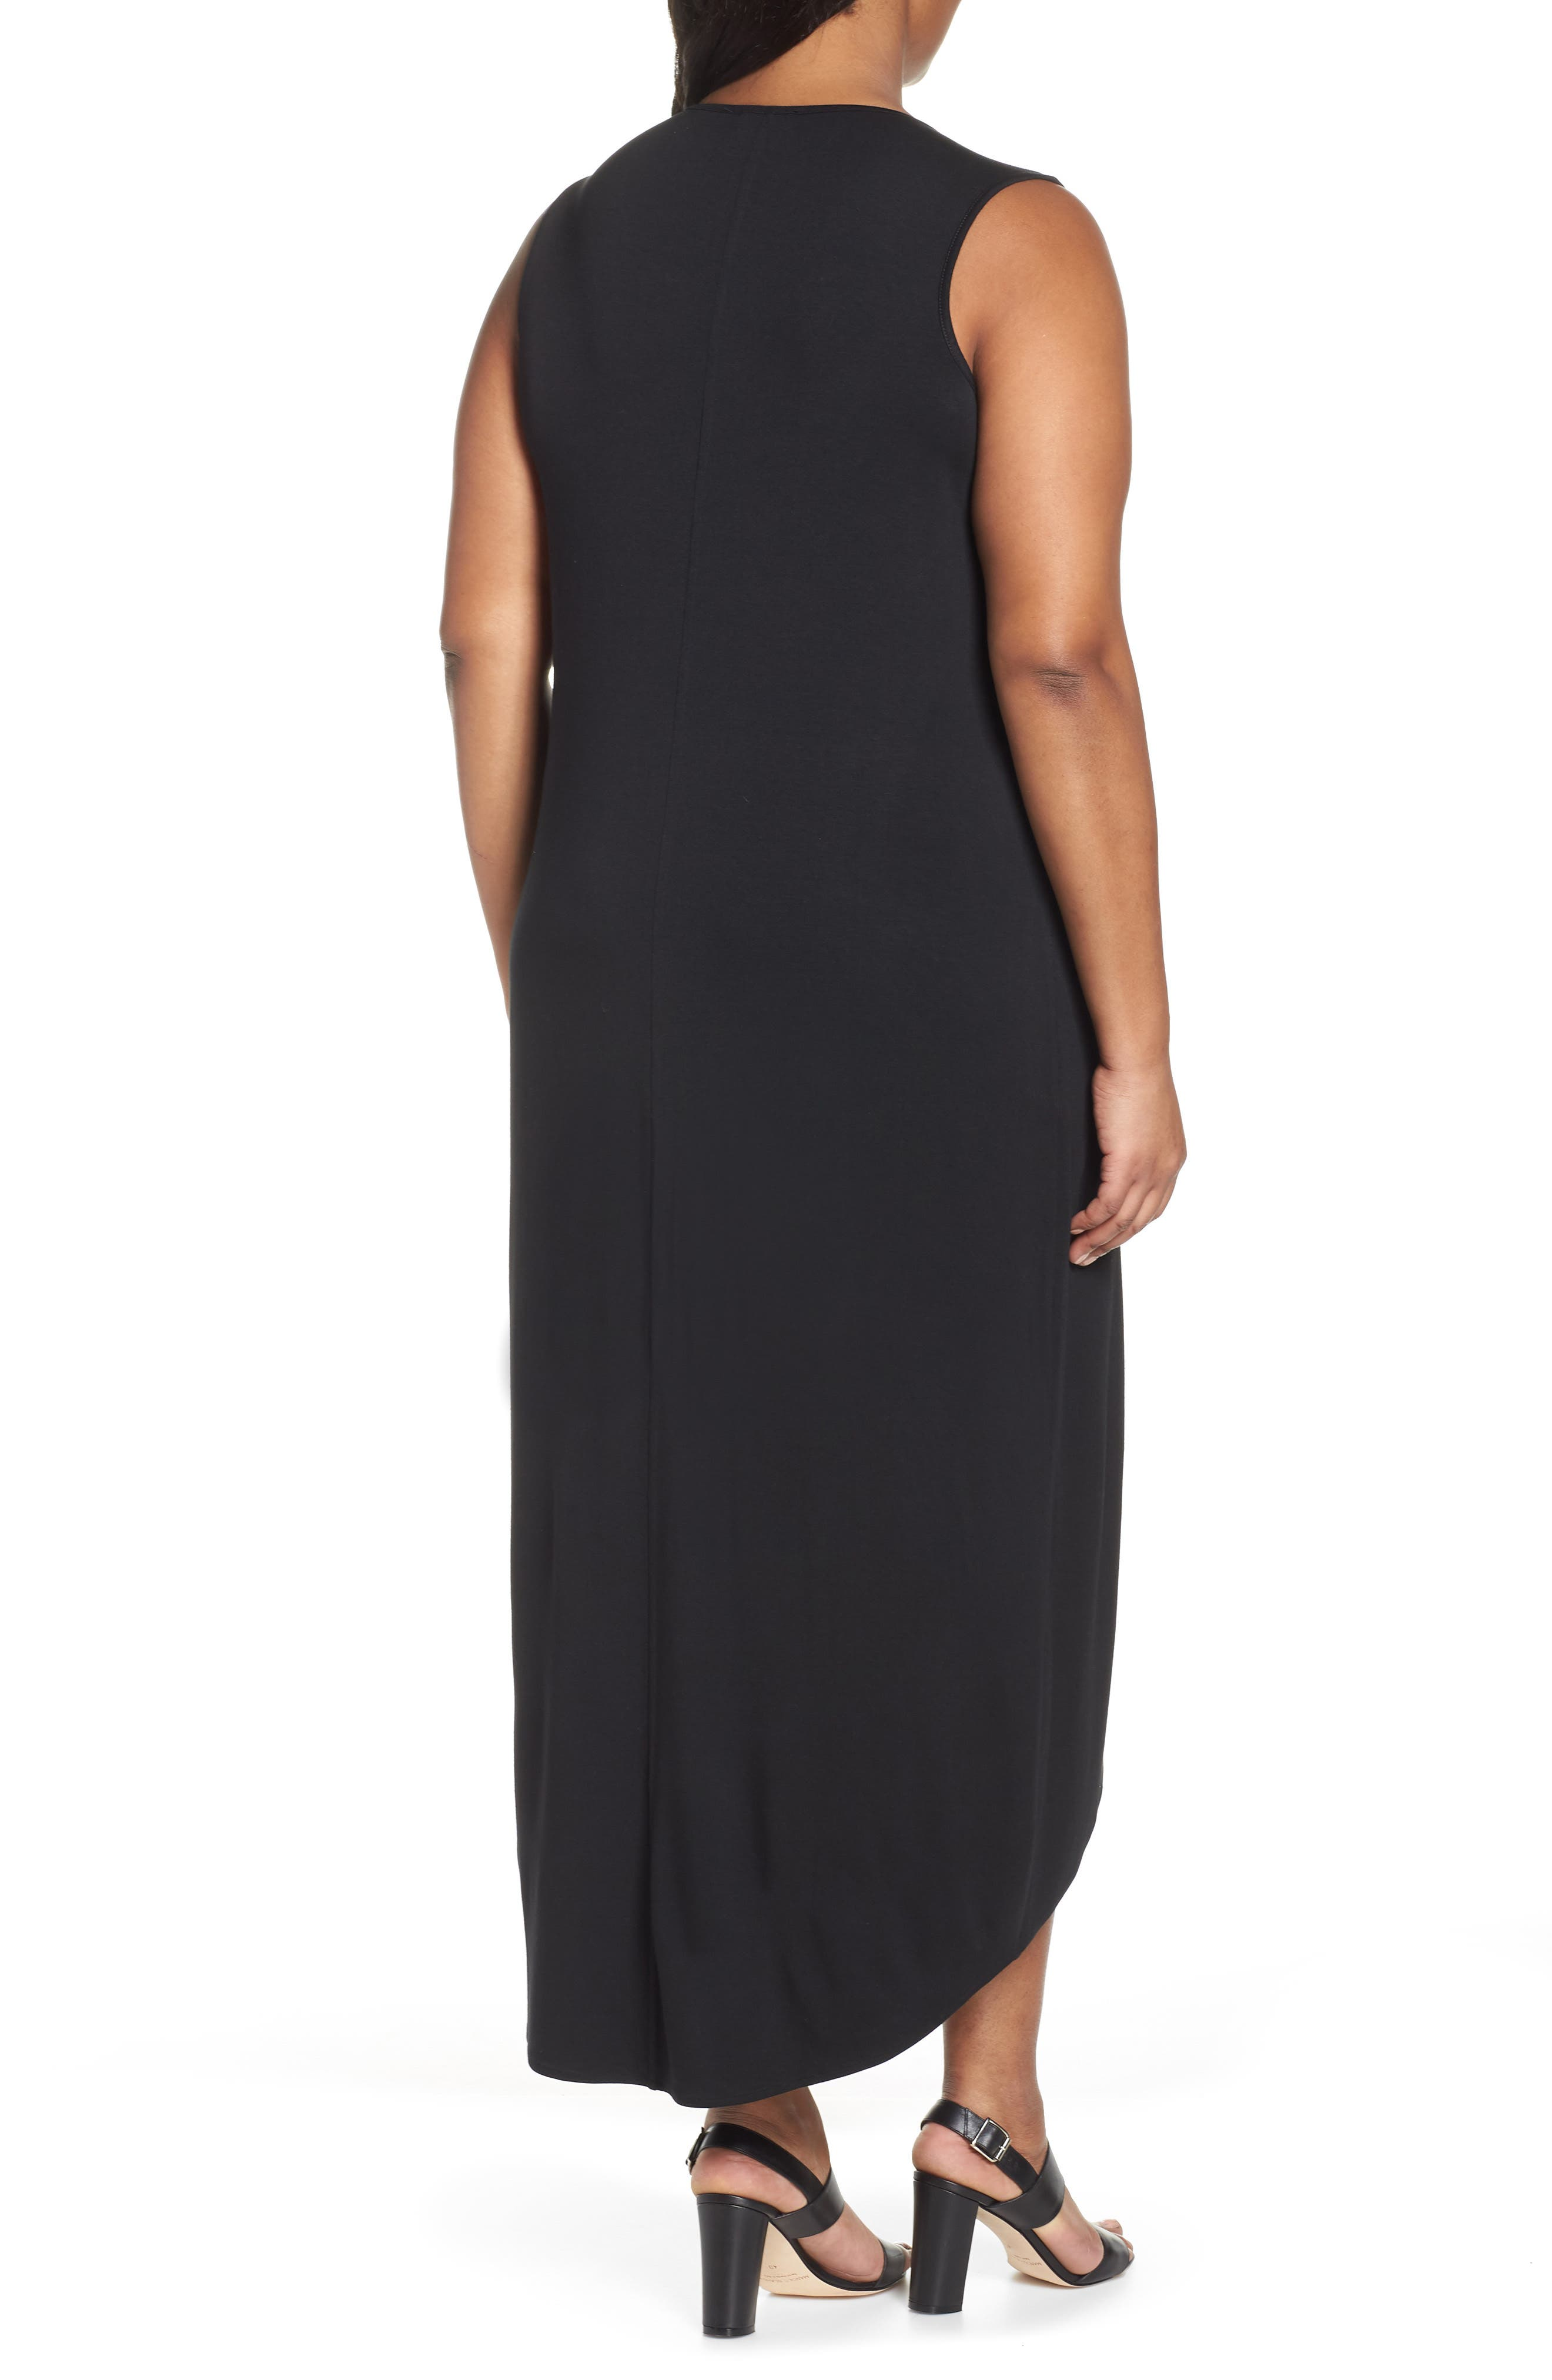 Ease Maxi Dress,                             Alternate thumbnail 2, color,                             BLACK ONYX